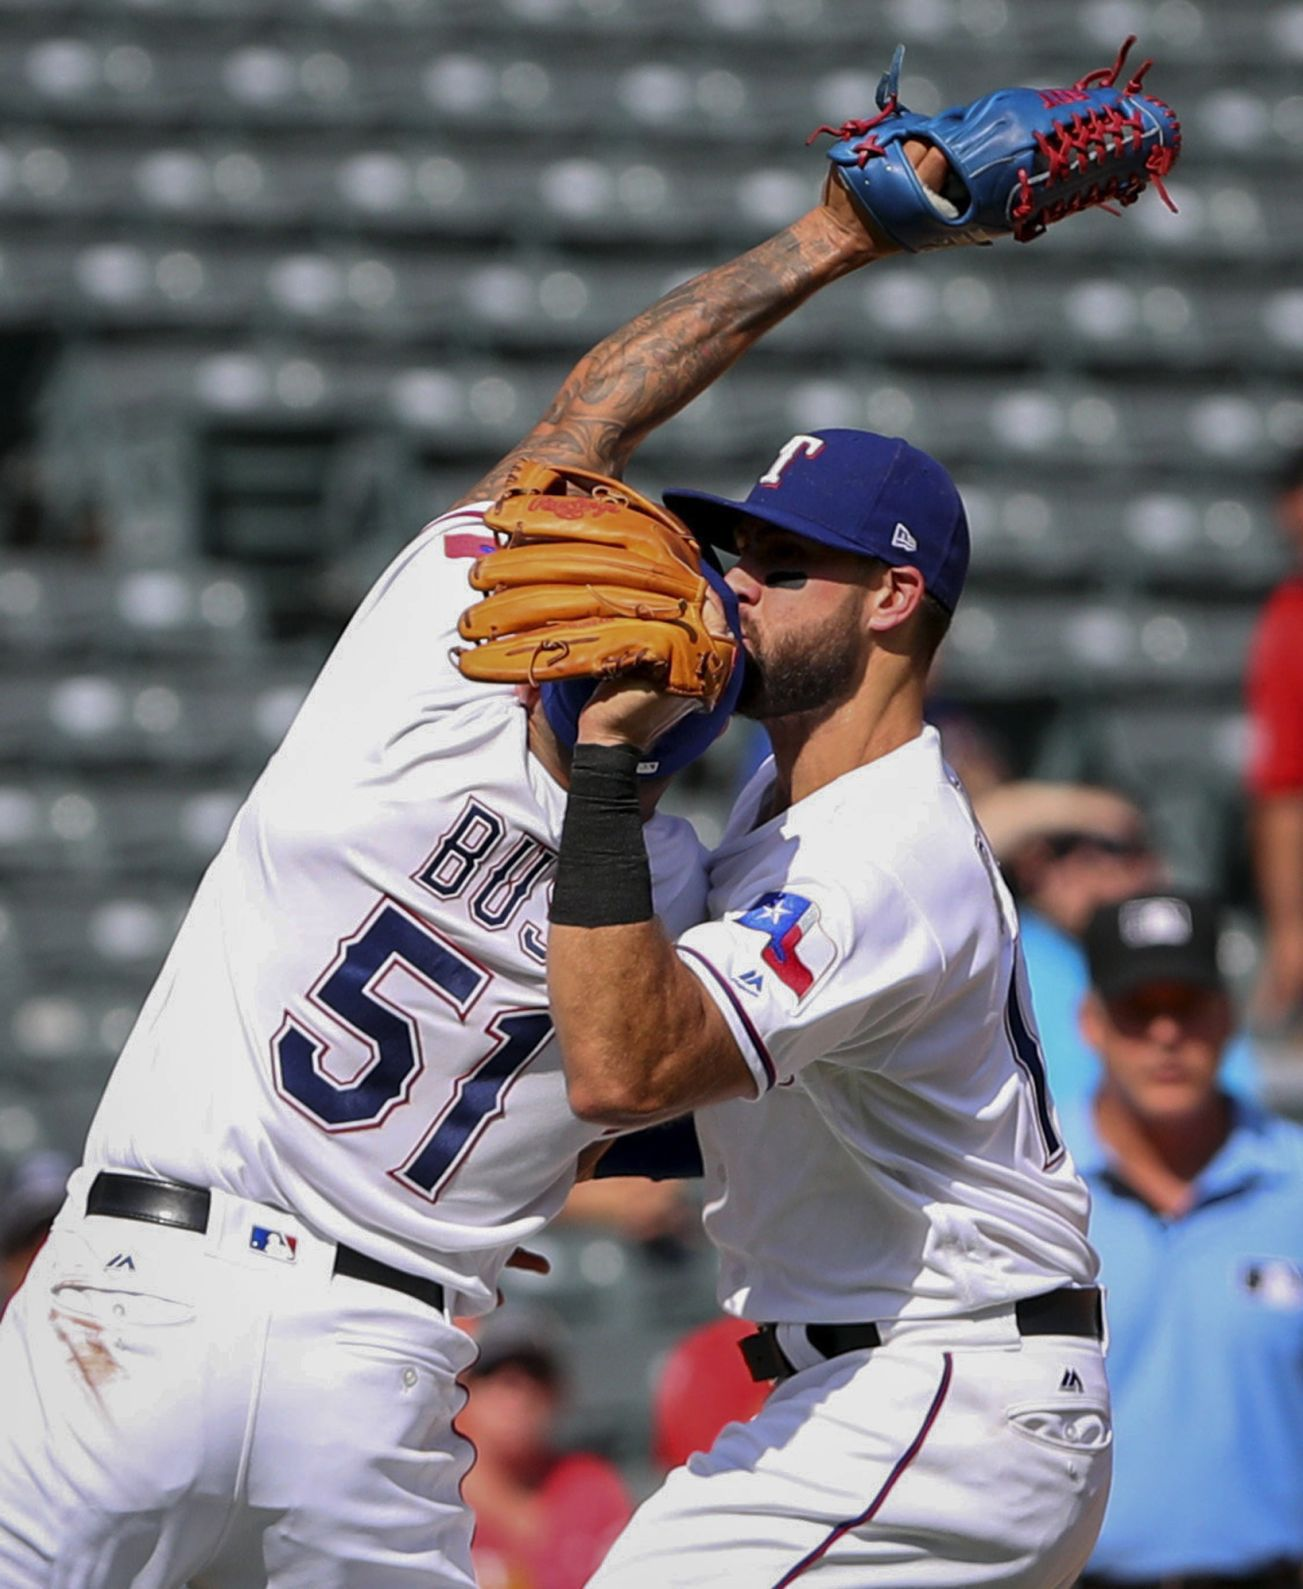 Joey Gallo (head) out for the Rangers on Monday